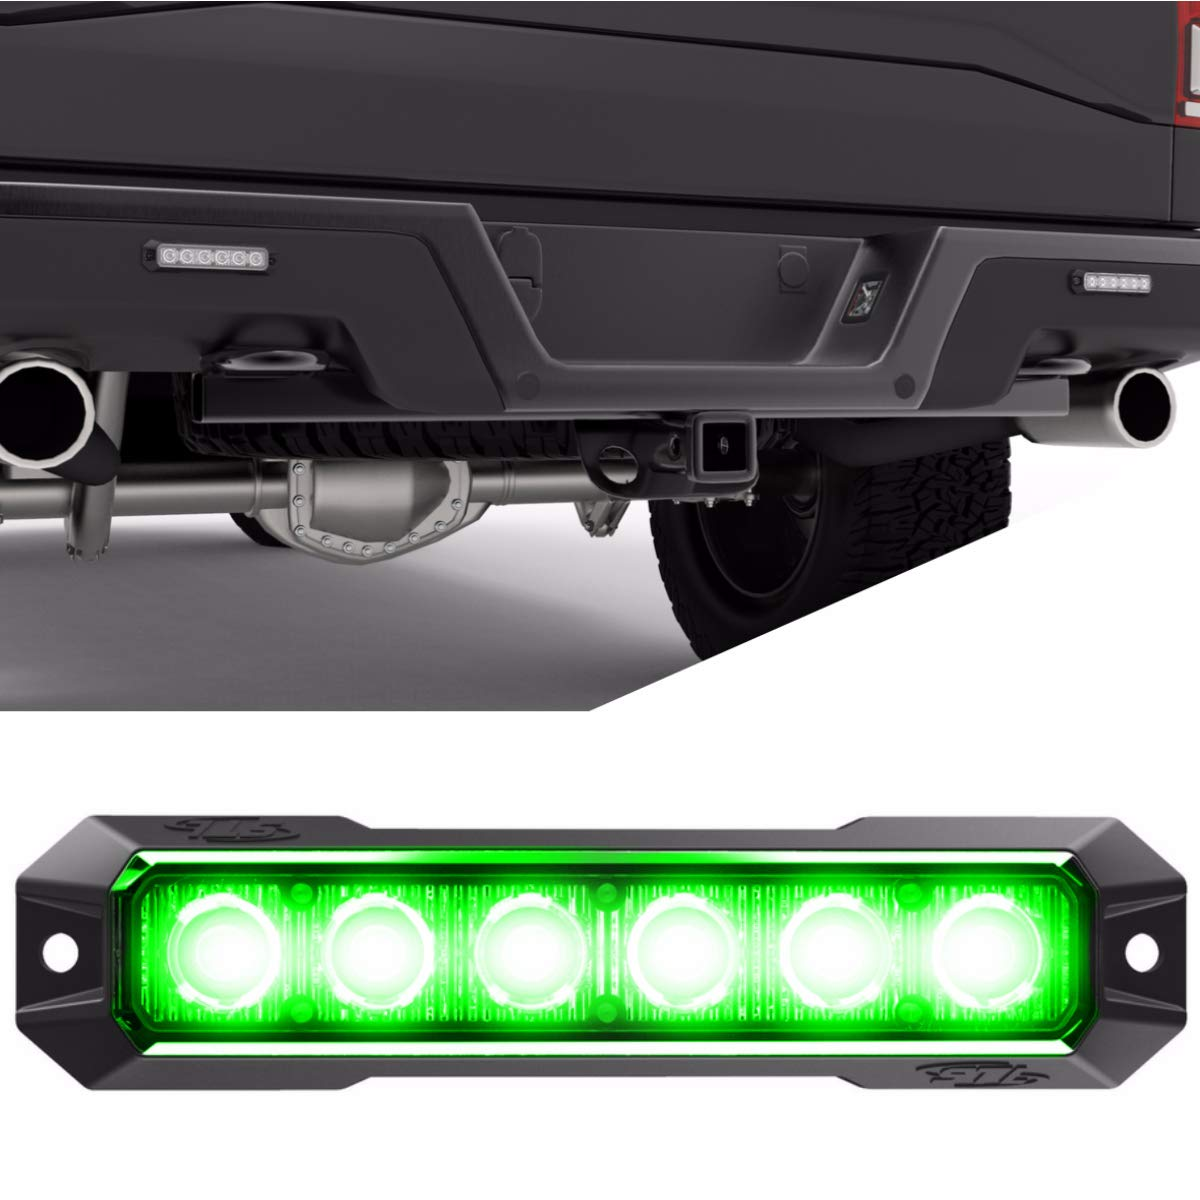 SpeedTech Lights Z-6 TIR 18W LED Strobe Light for Police Cars, Construction Trucks, Service Vehicles, Plows, Emergency Vehicles. Surface Mount Grille Flashing Hazard Beacon Light - Green/Green